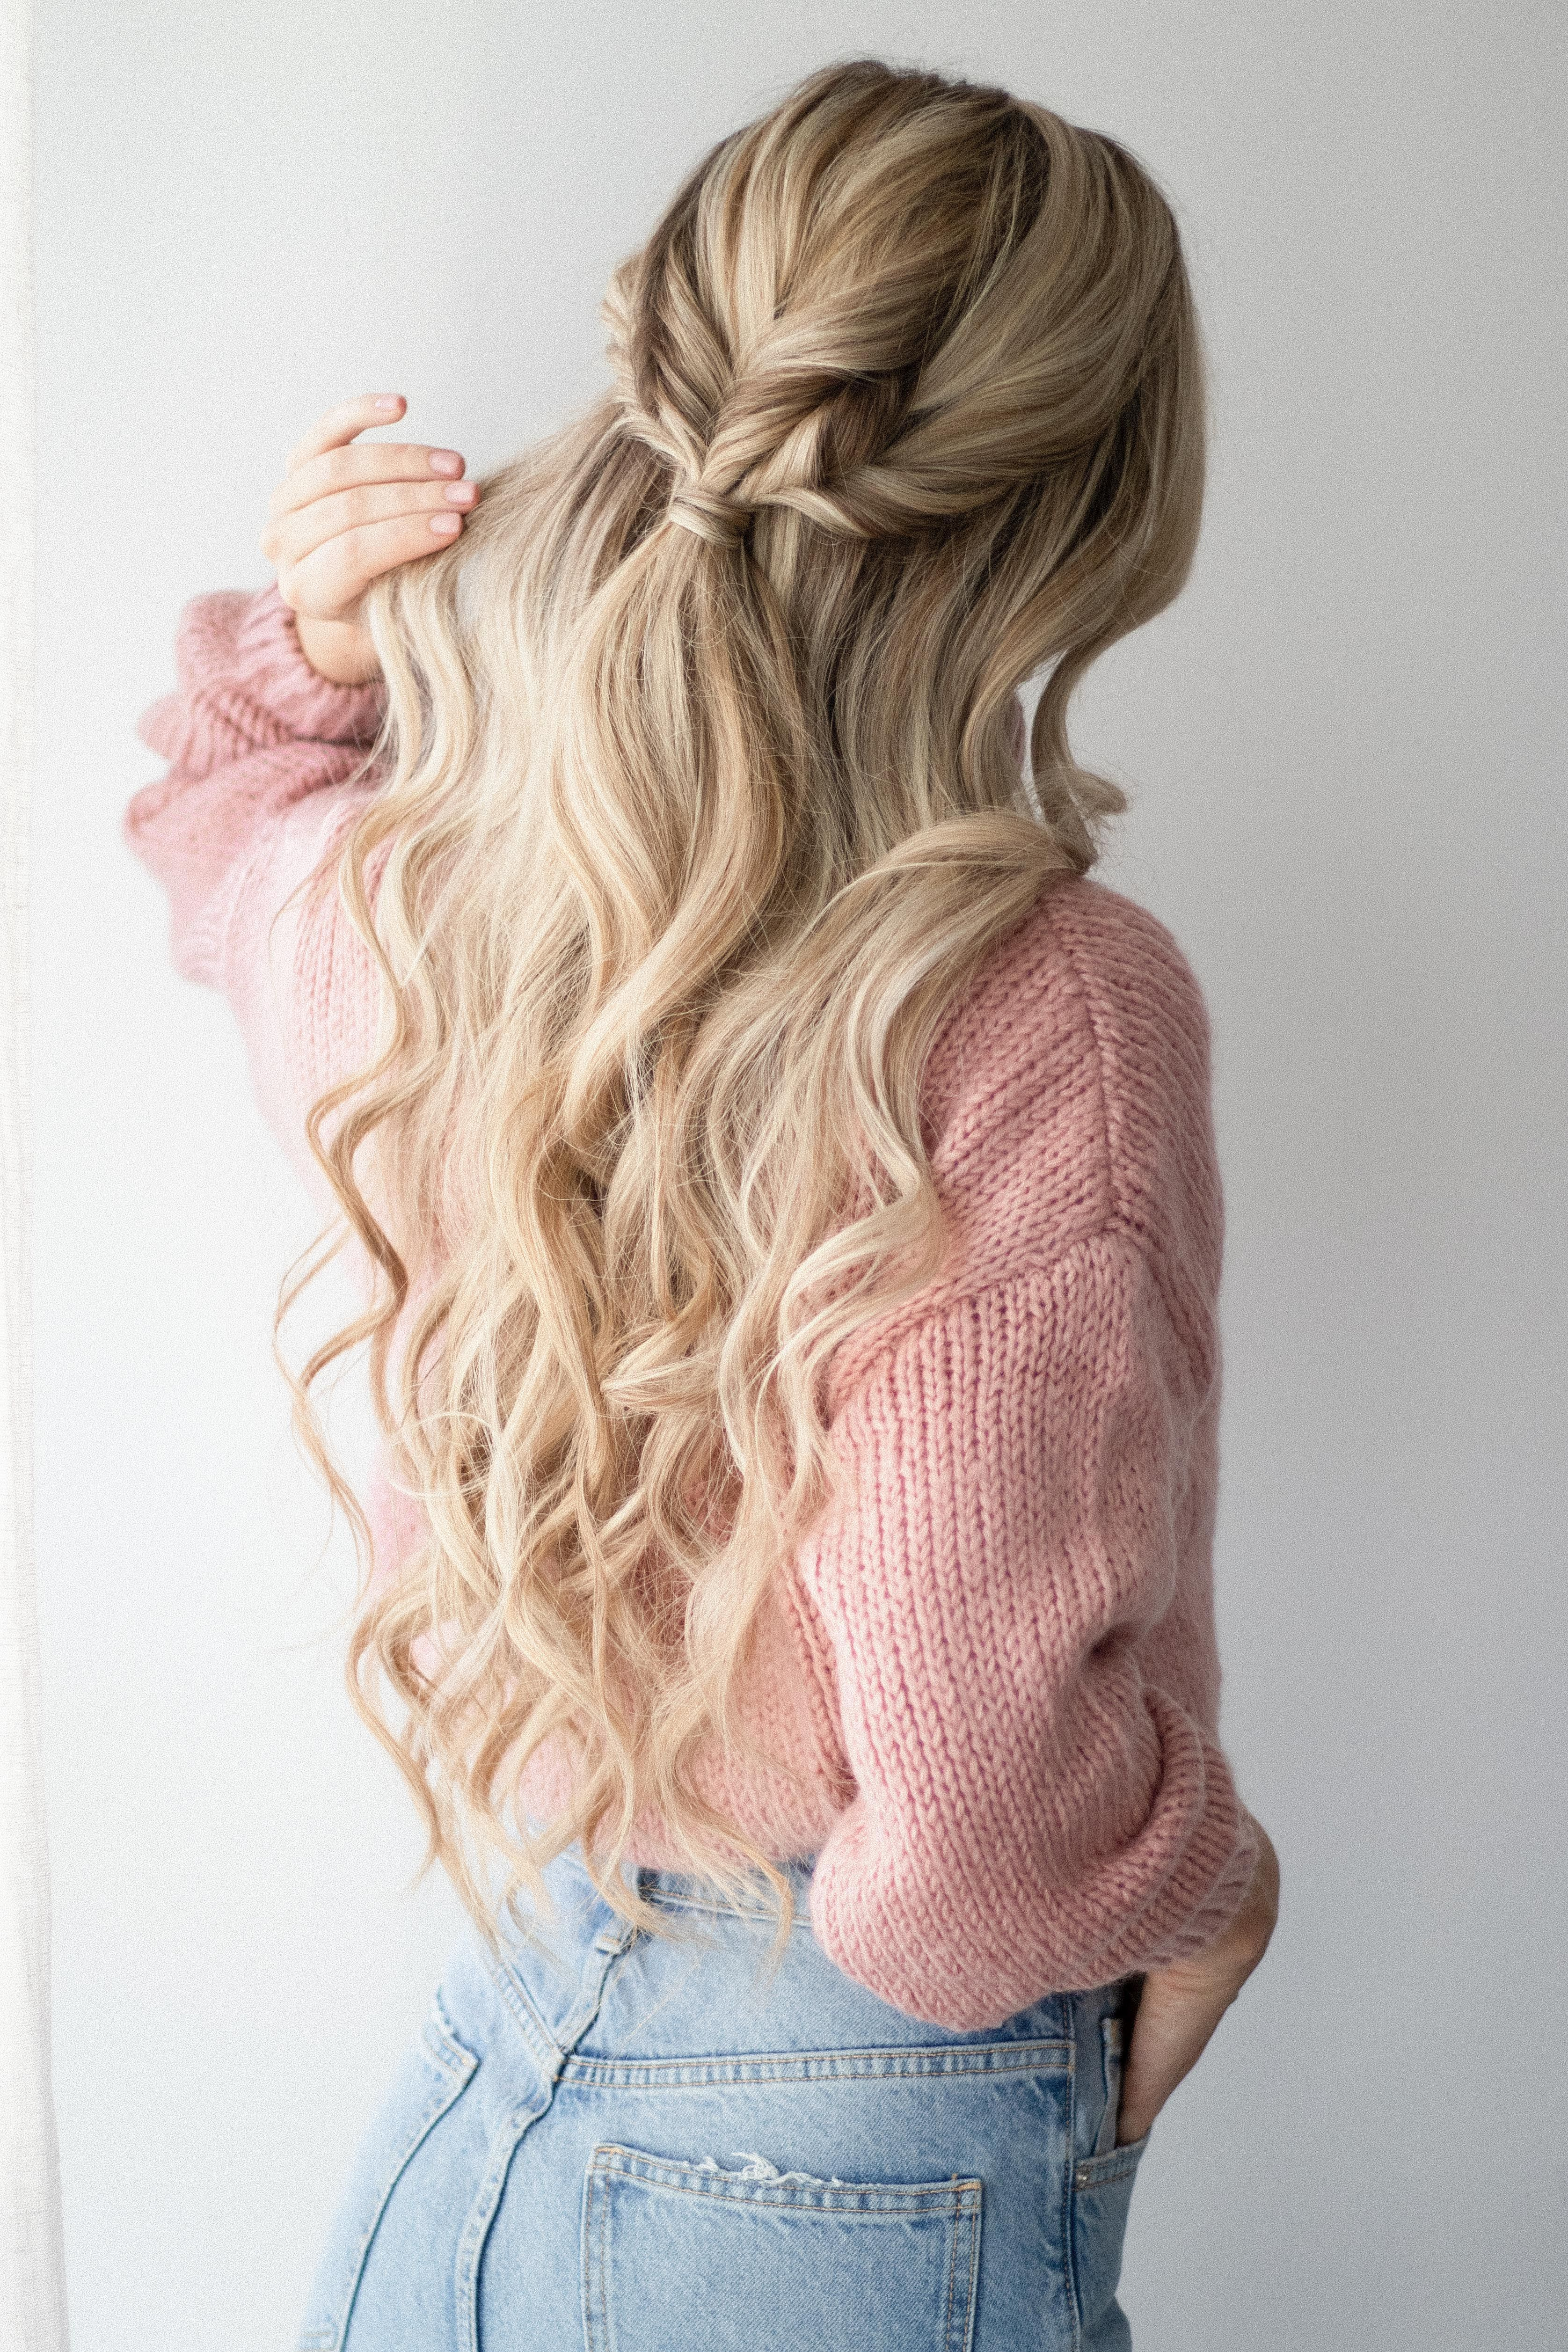 3 Easy Hairstyles that are Perfect for Sweater Weather